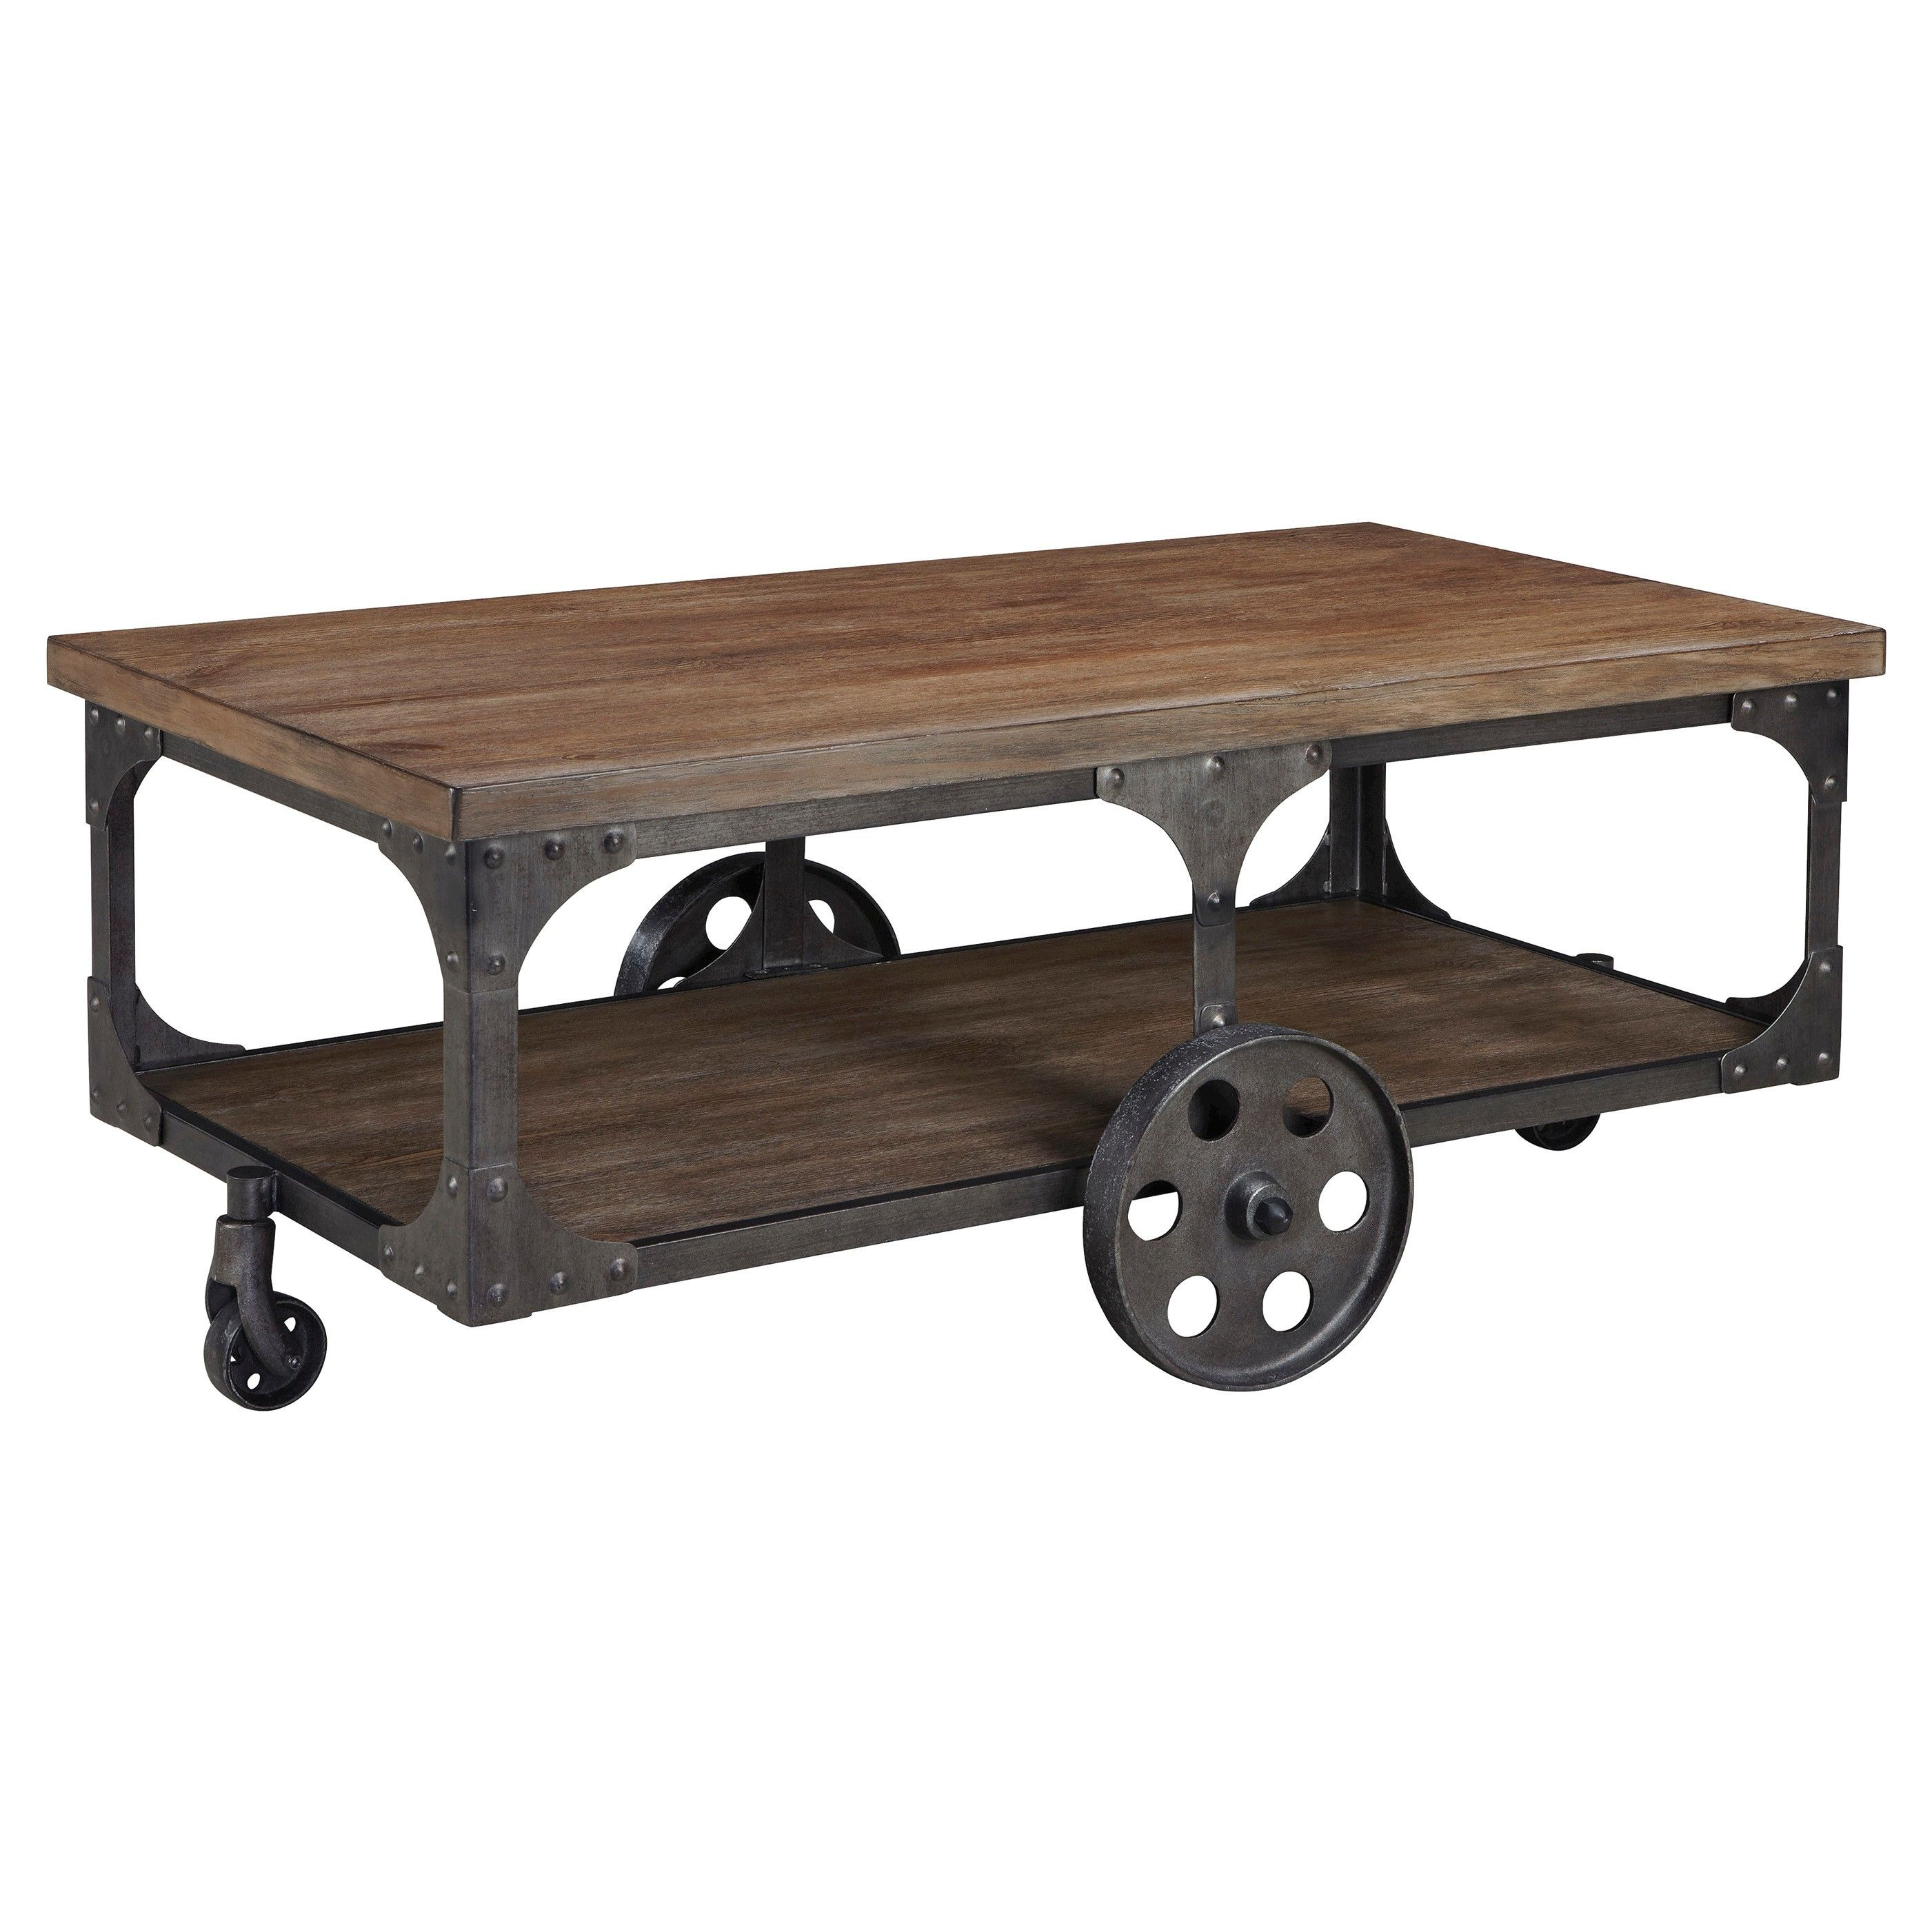 Vedel Industrial Loft Zinc Wood Rectangle Coffee Table: Sometimes Natural Beauty And Interior Design Go Hand In